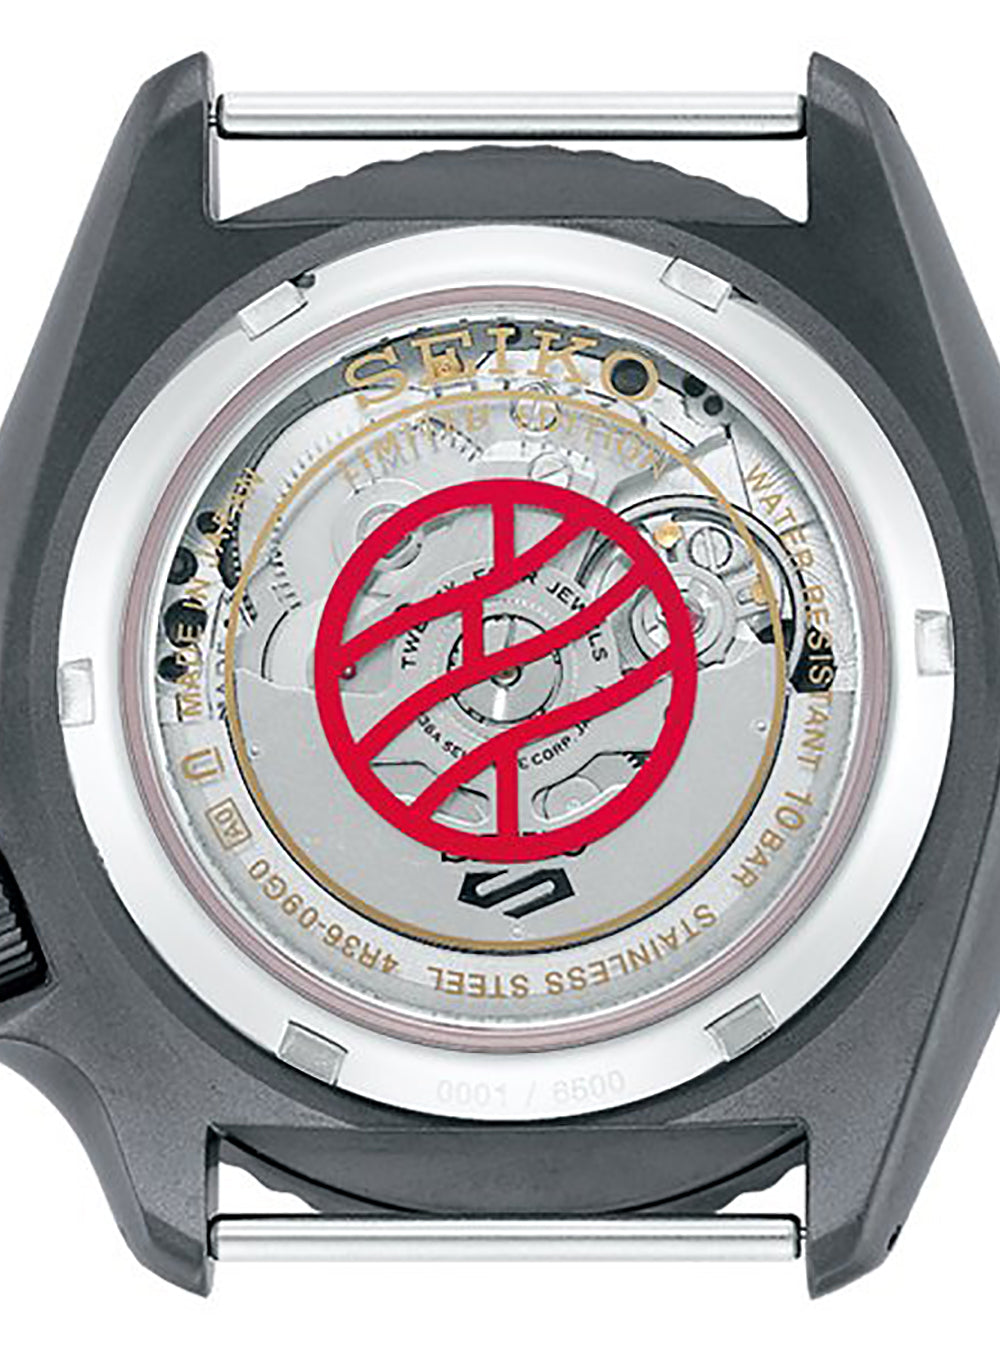 SEIKO 5 SPORTS NARUTO & BORUTO LIMITED EDITION SHIKAMARU NARA MODEL SBSA097 MADE IN JAPAN JDM